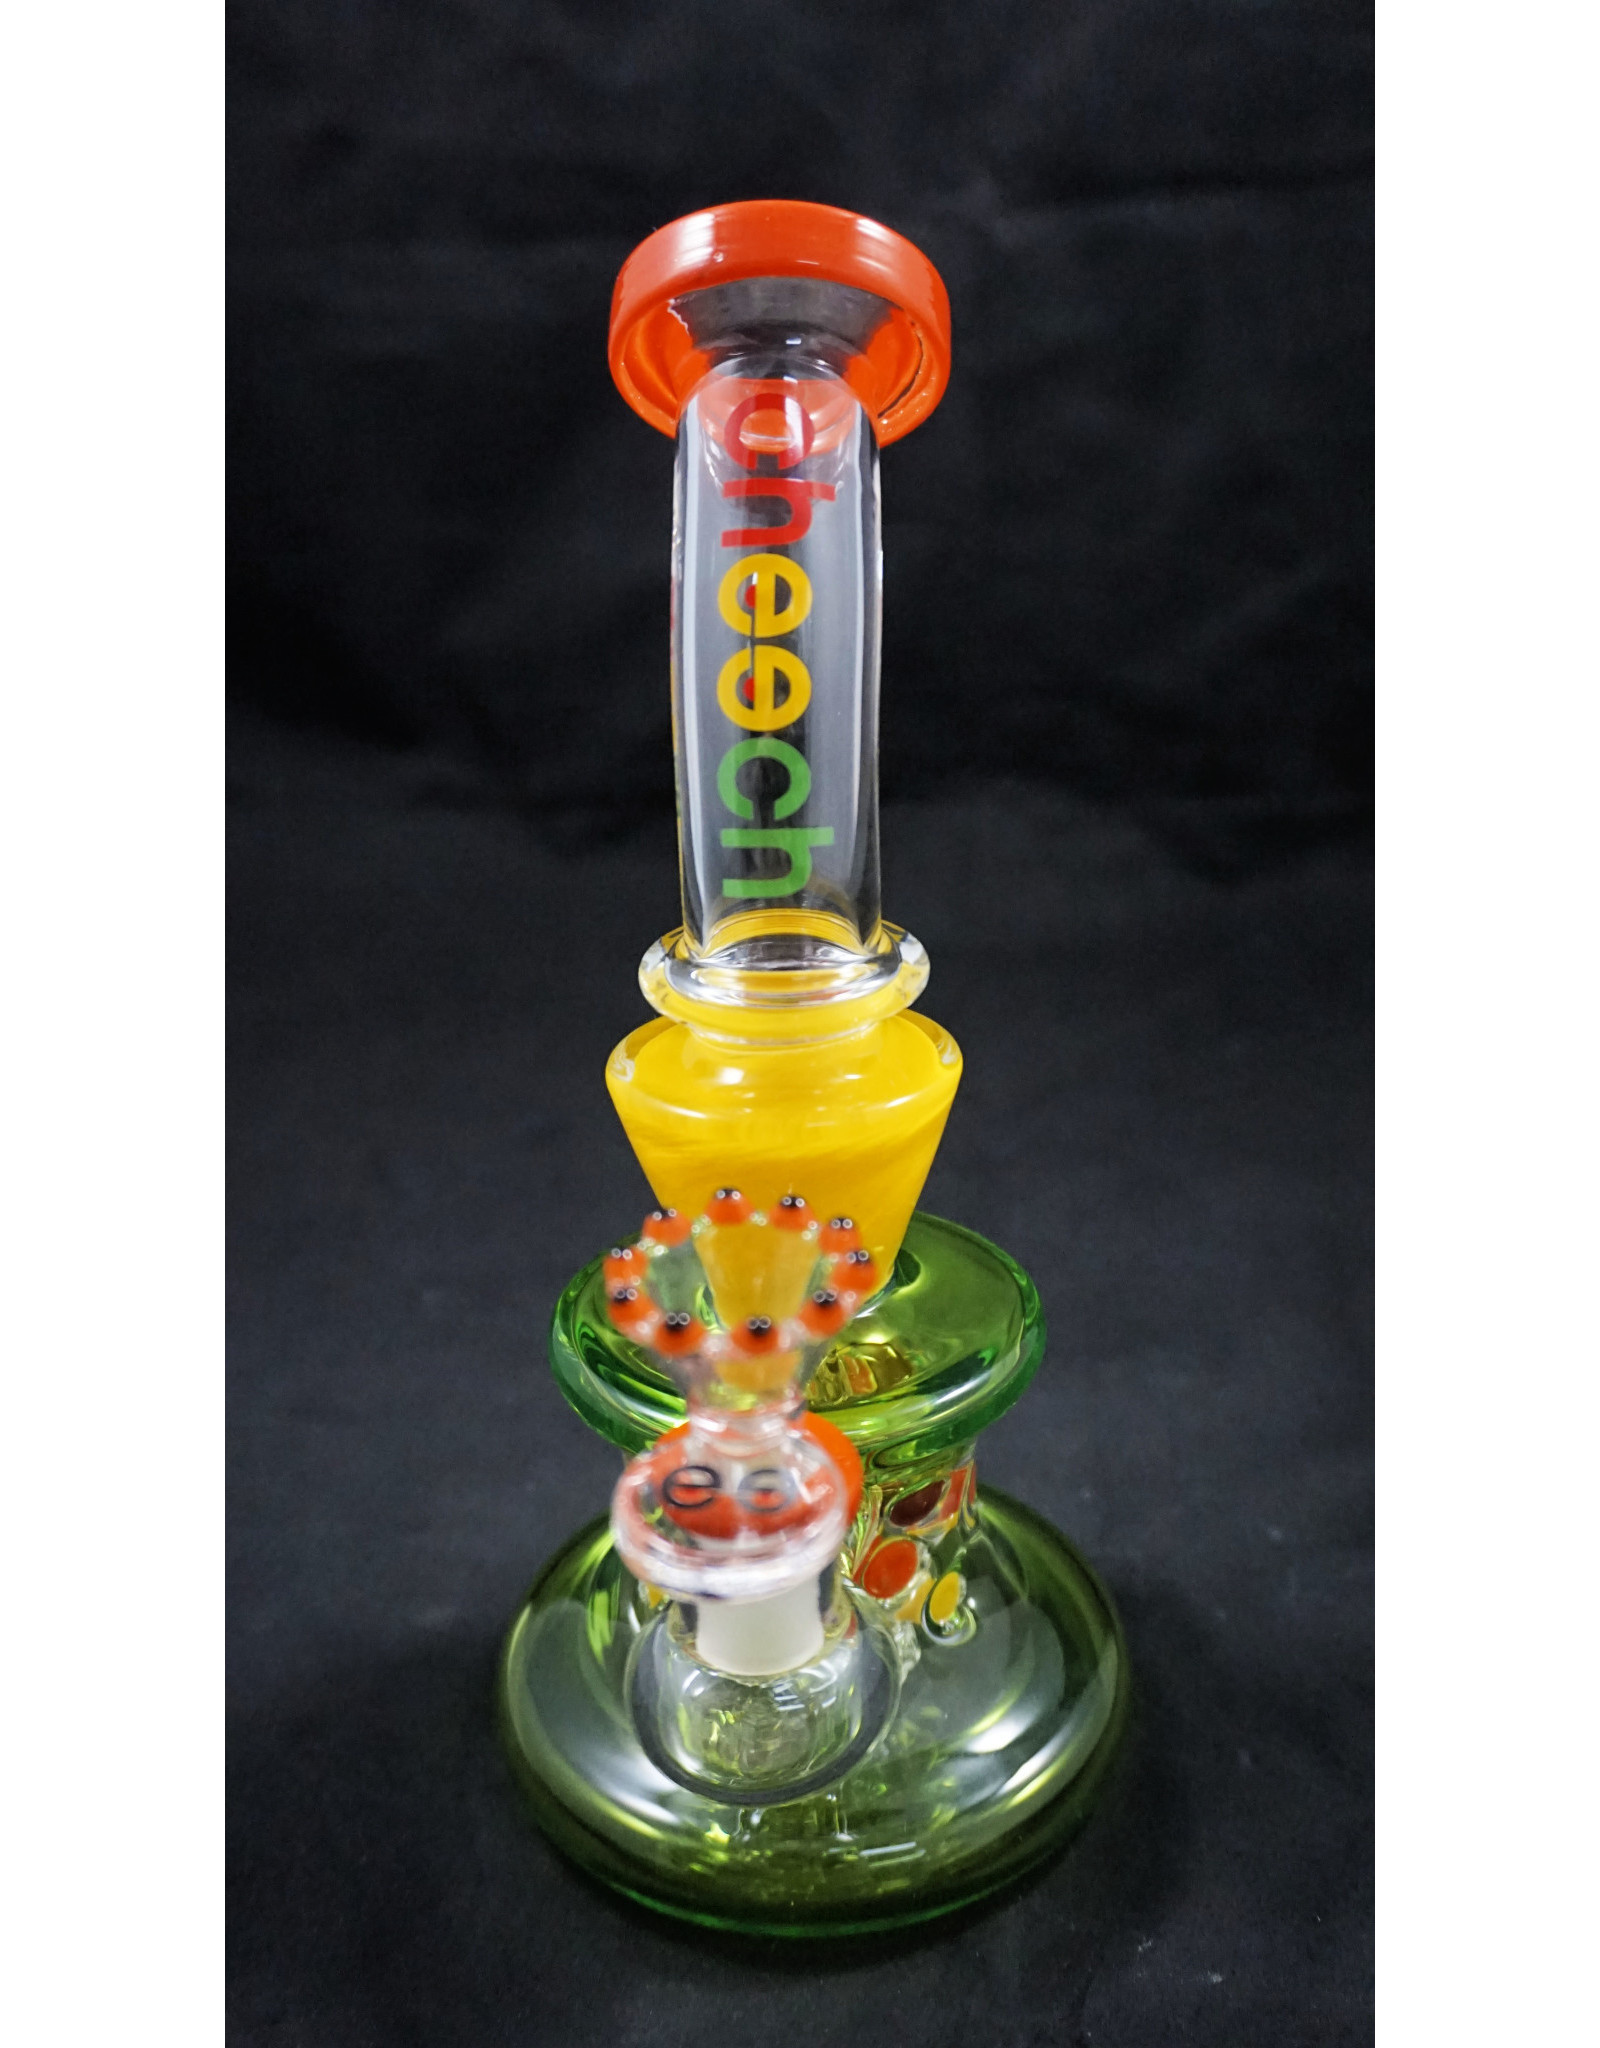 Cheech Glass Cheech Glass Shower Head Rig 8""